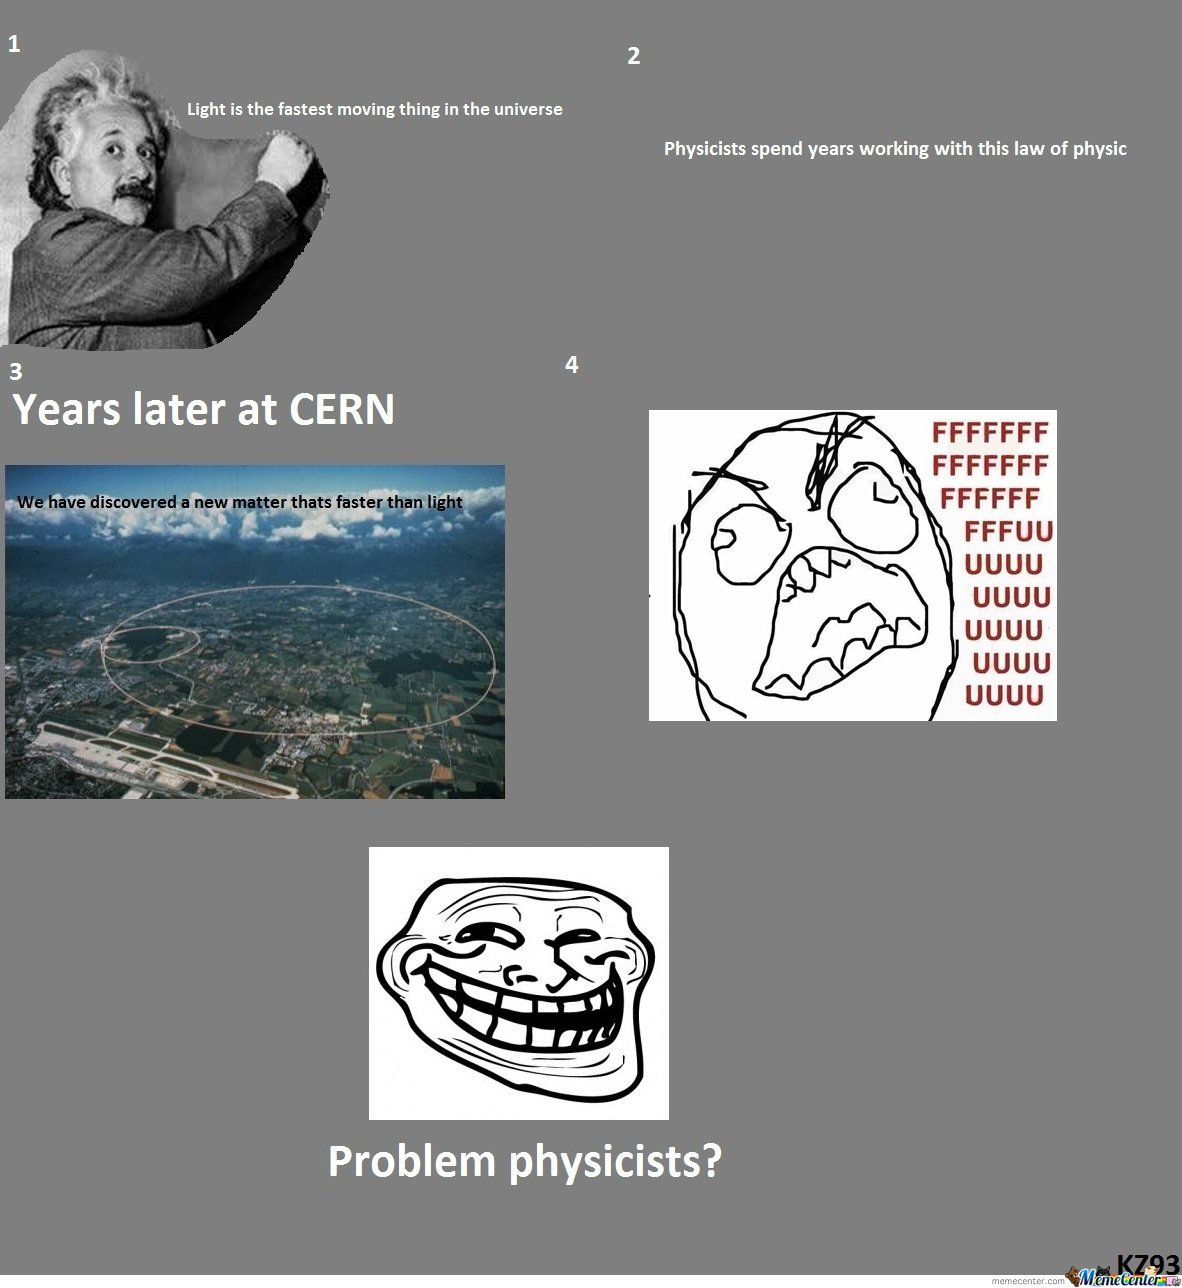 Problem? Physicist